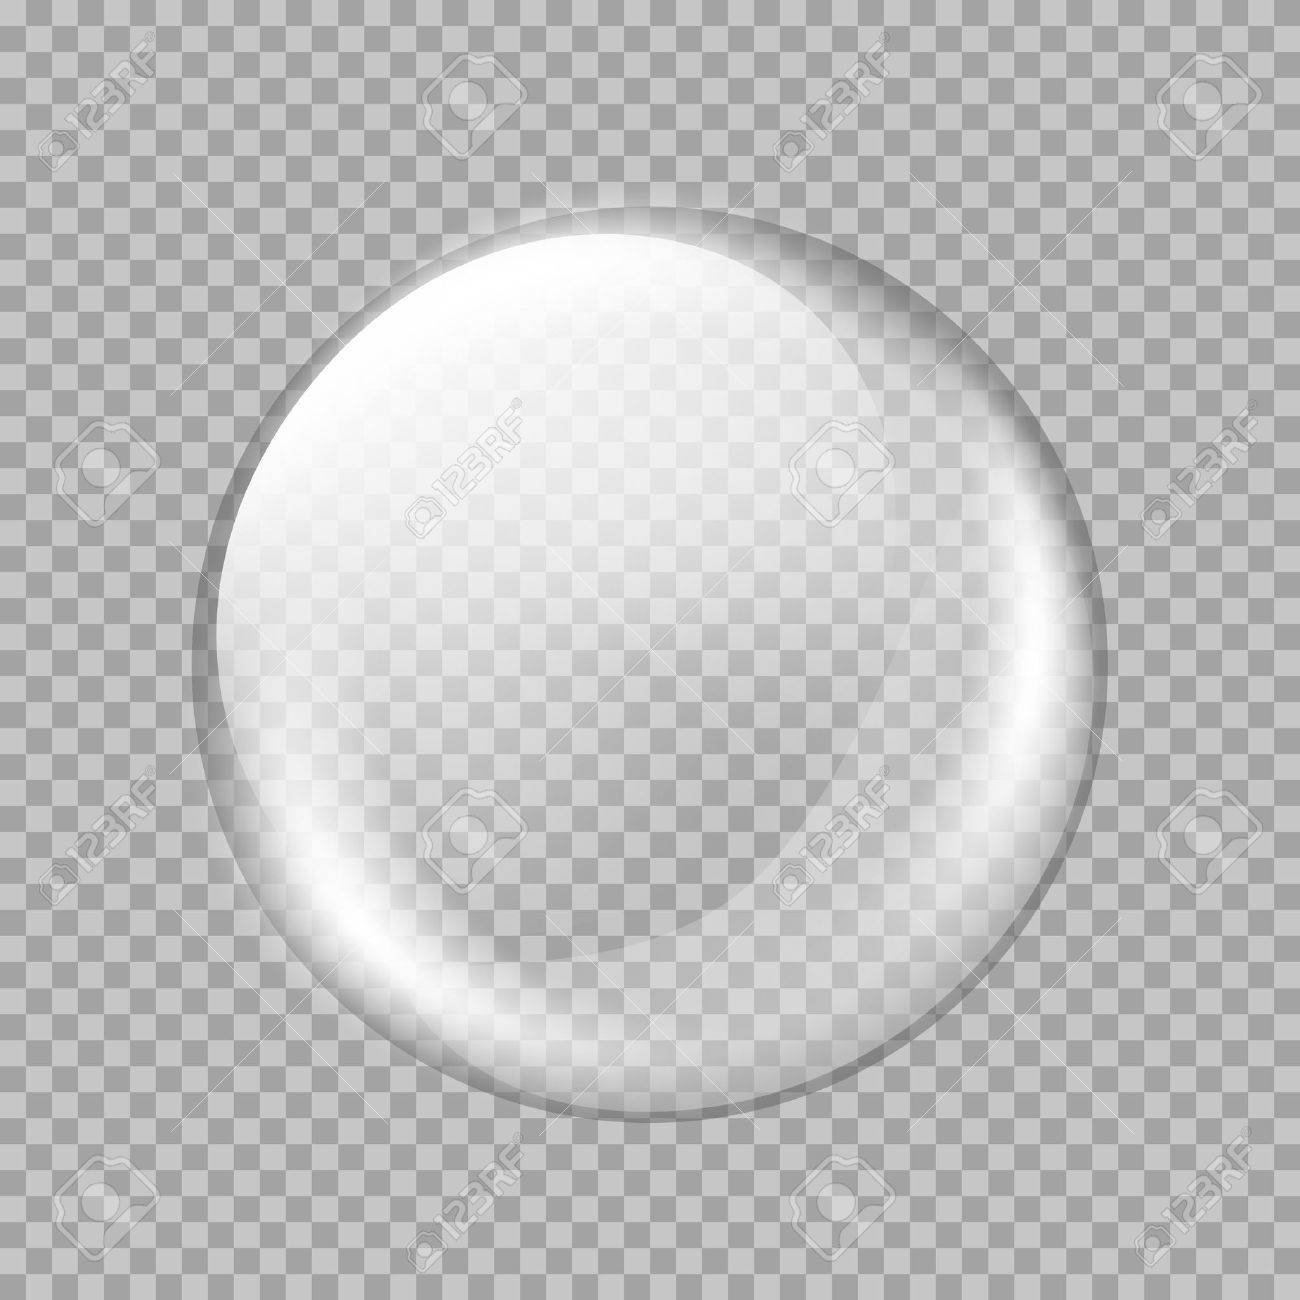 Big white transparent glass sphere with glares and highlights. White pearl. Vector illustration, contains transparencies, gradients and effects - 50538889